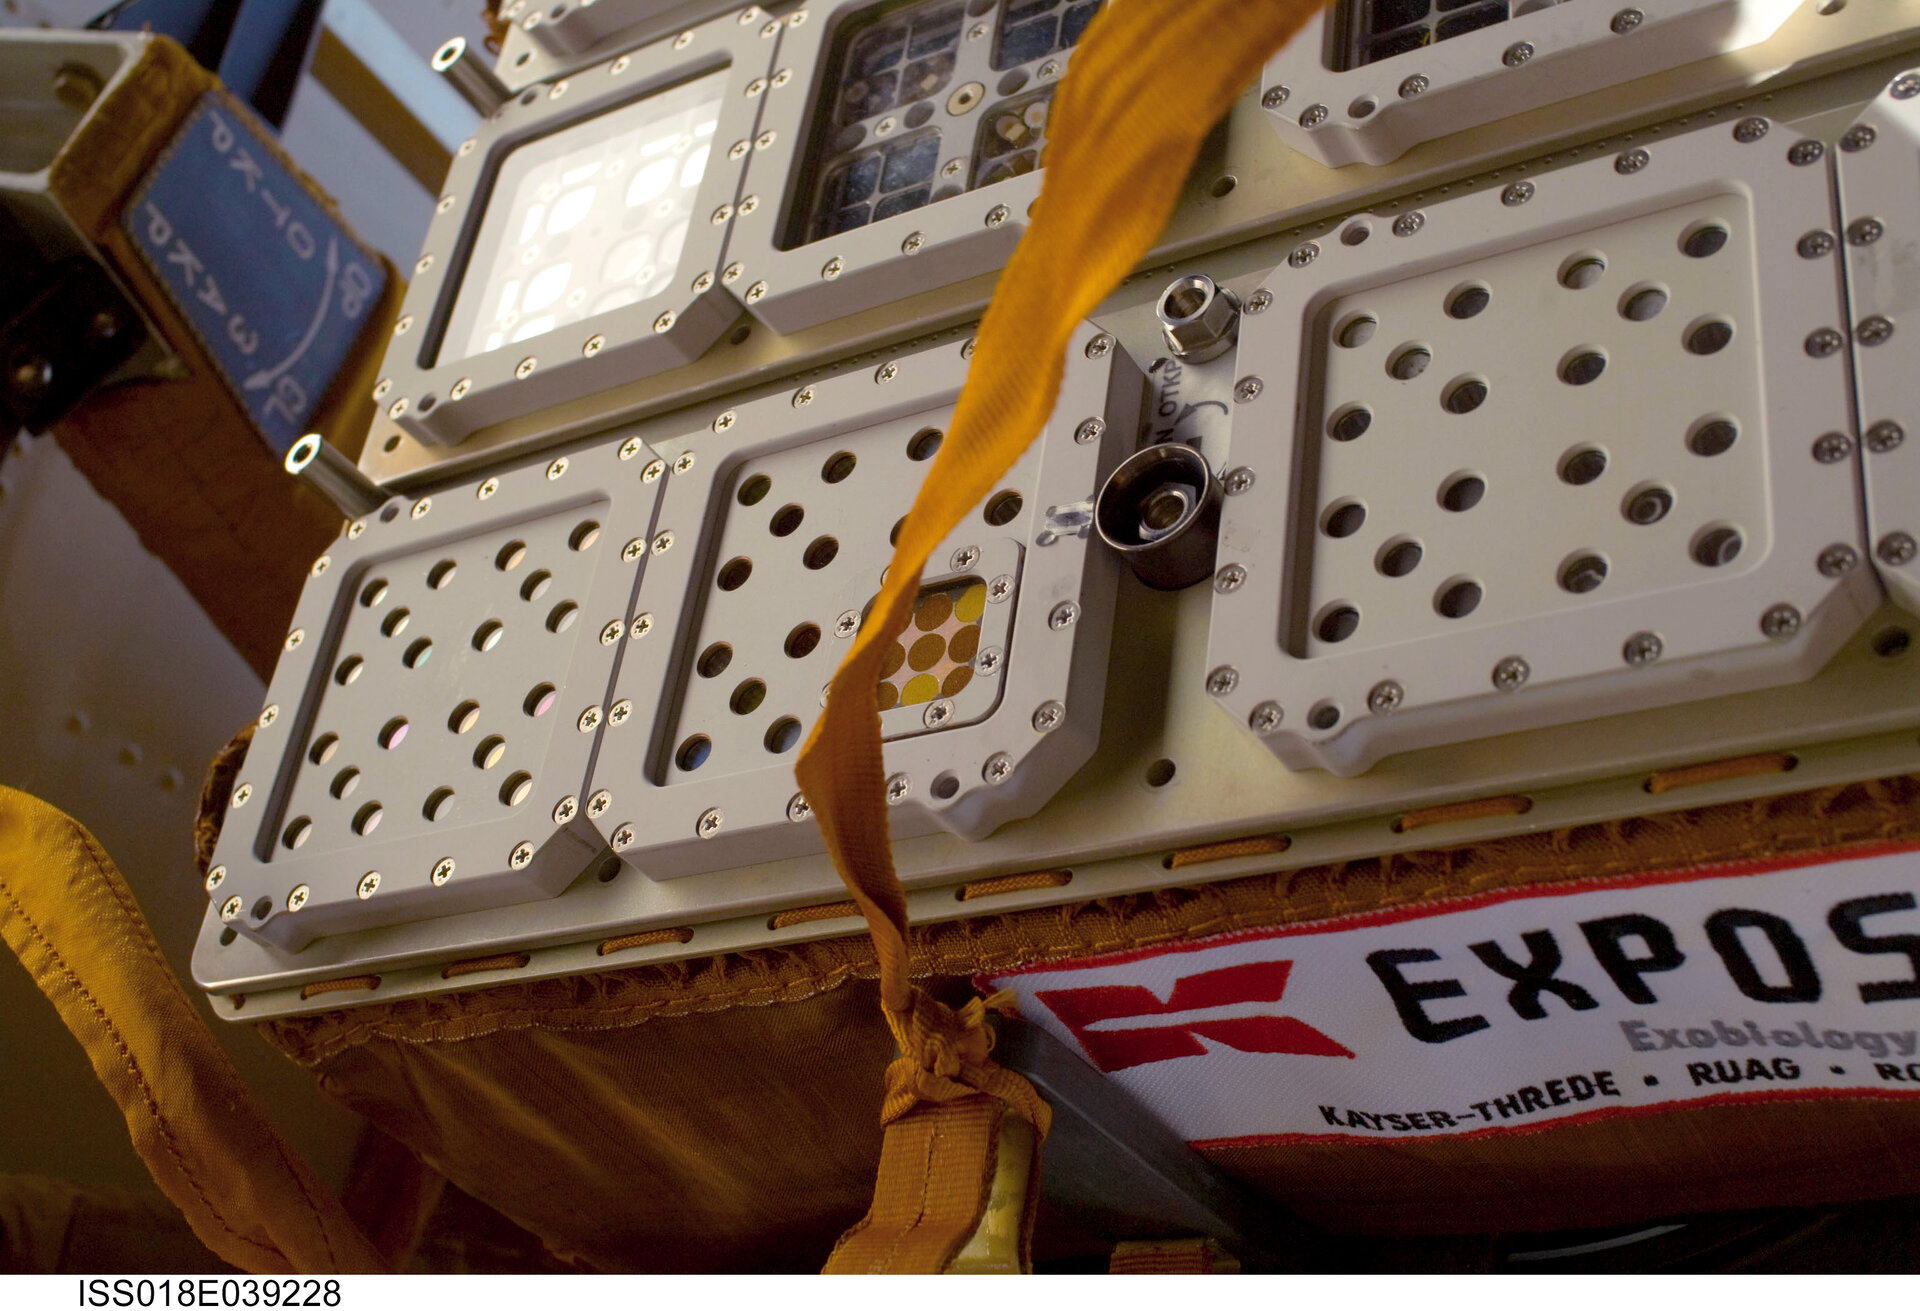 Close-up image of the Expose-R experiment